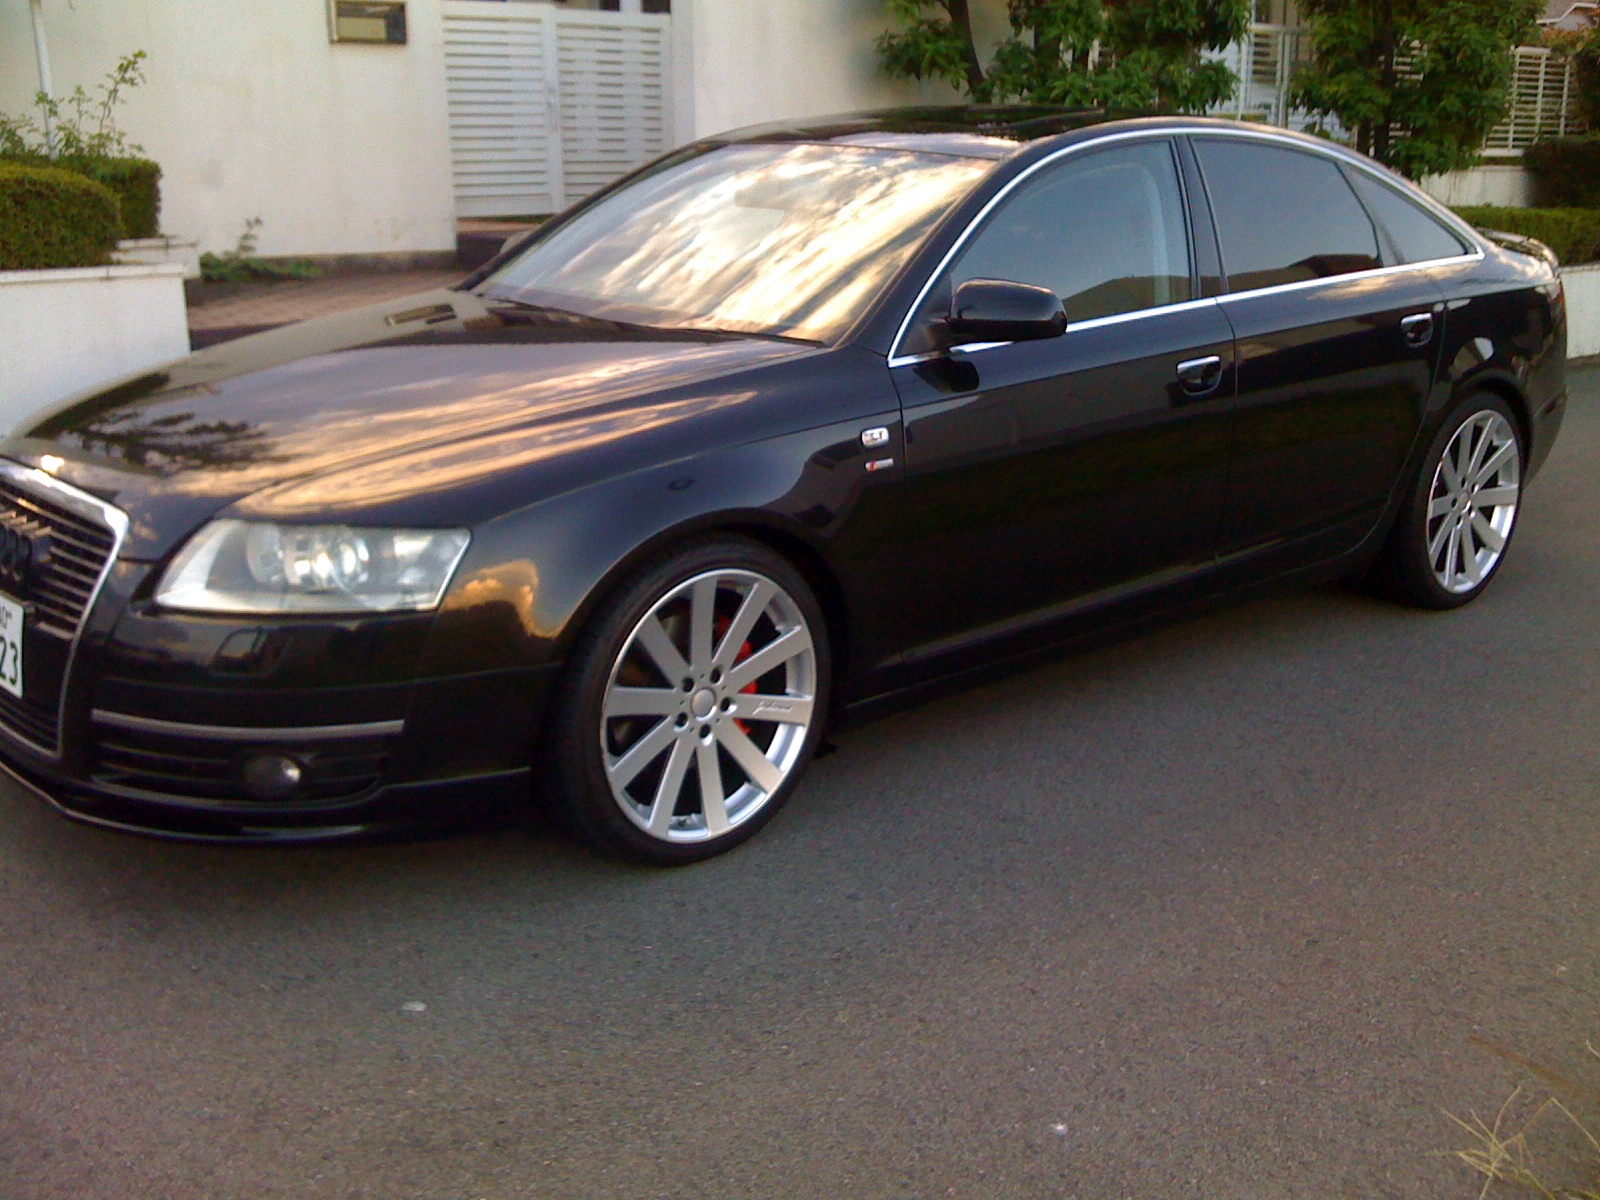 bbjapan 2006 audi a63 2 quattro sedan 4d specs photos modification info at cardomain. Black Bedroom Furniture Sets. Home Design Ideas